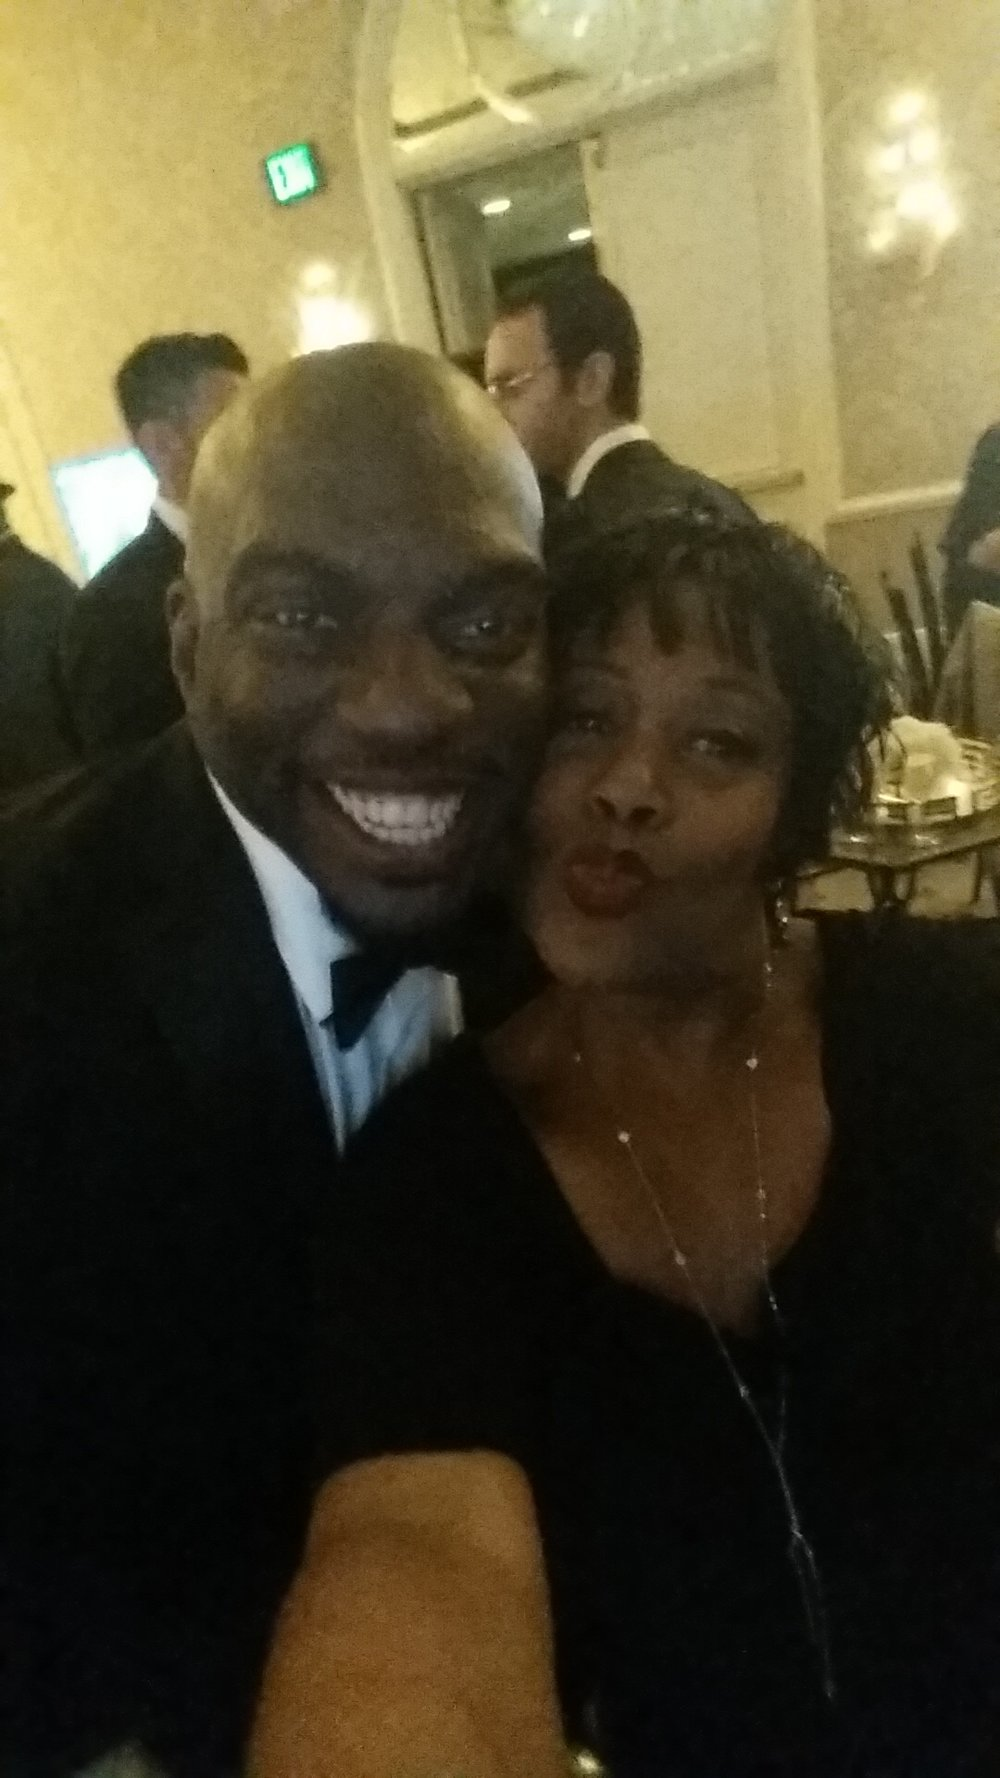 SElma's Omar dorsey and Carla Renata at the aafca oscar screening party